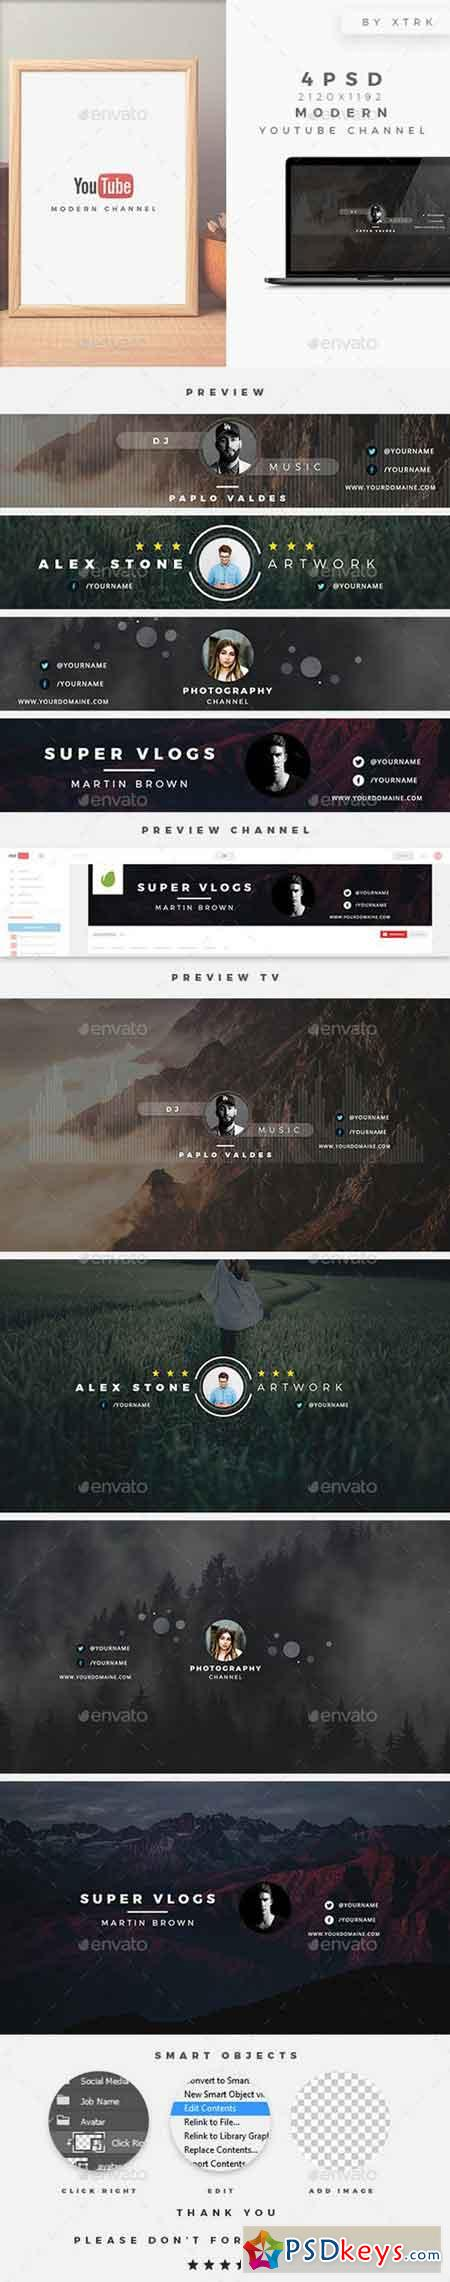 Modern Youtube Channel 19375038 » Free Download Photoshop